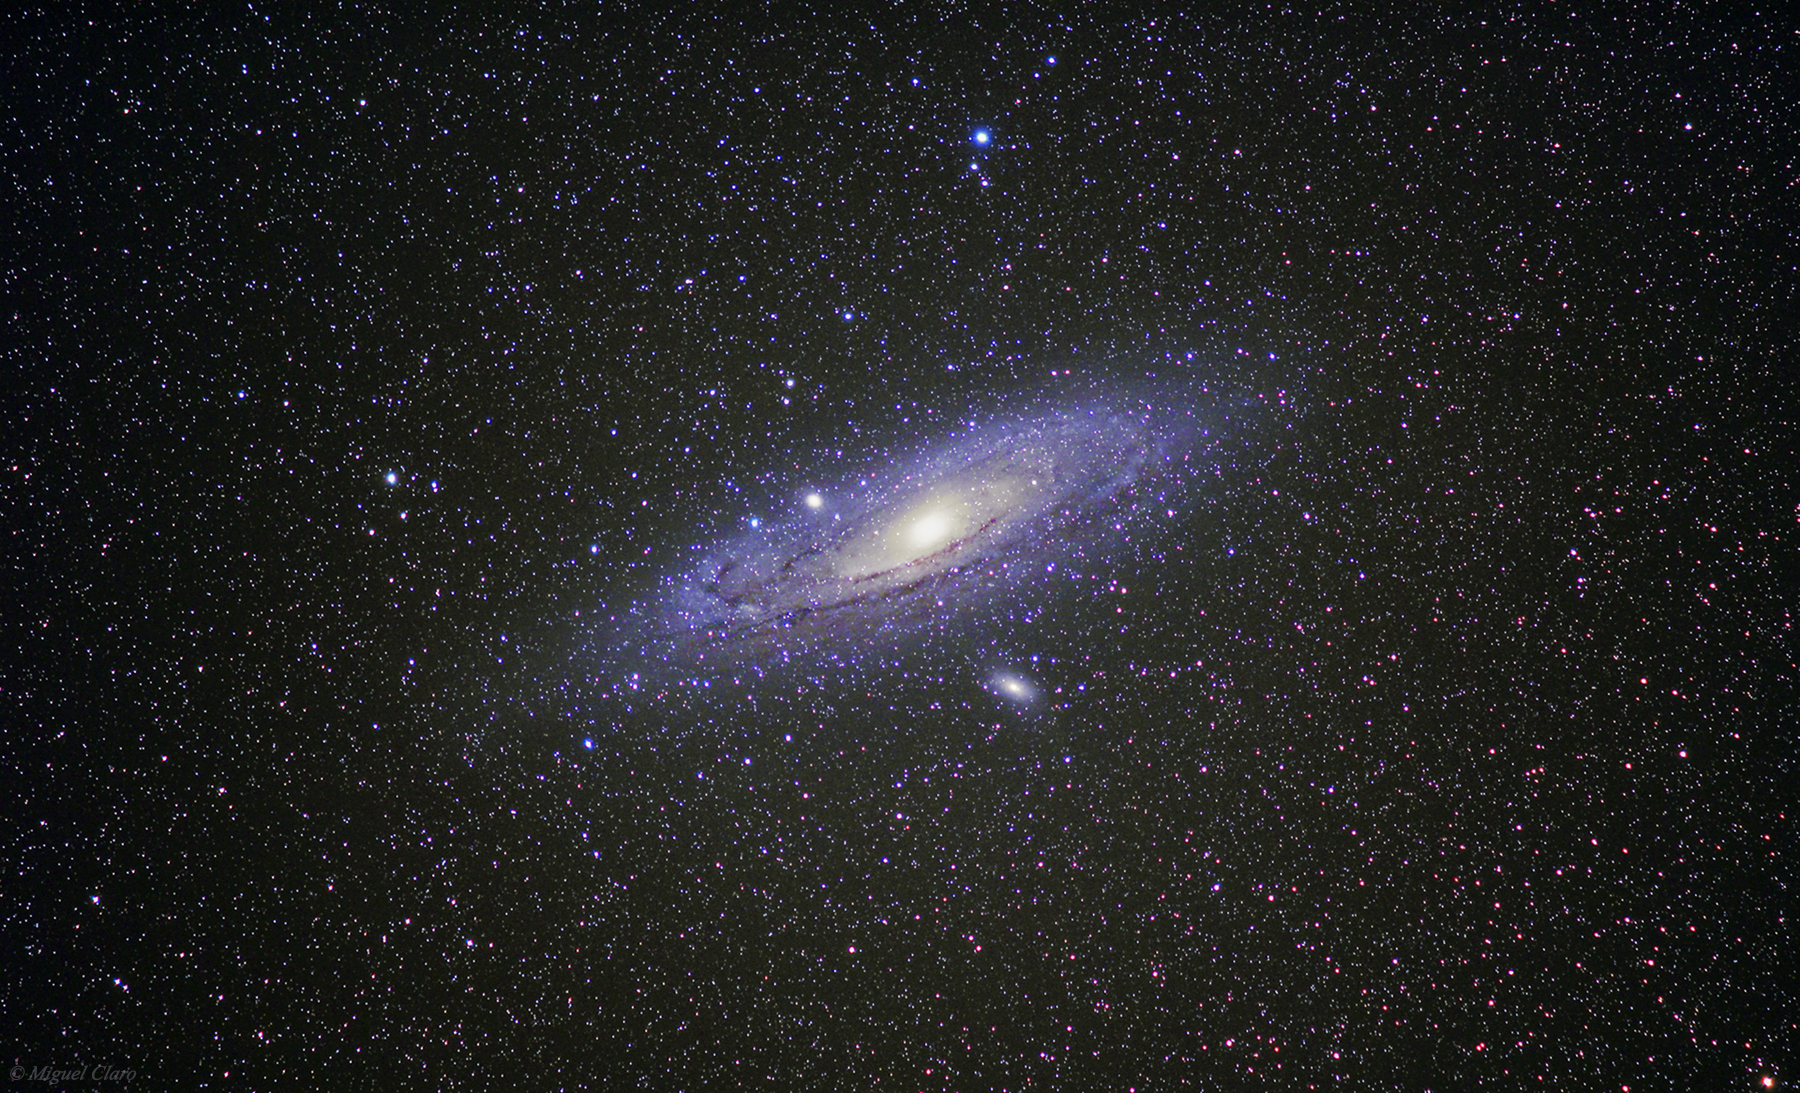 Amazing Andromeda Galaxy View Captured by Amateur Astronomer (Photo)